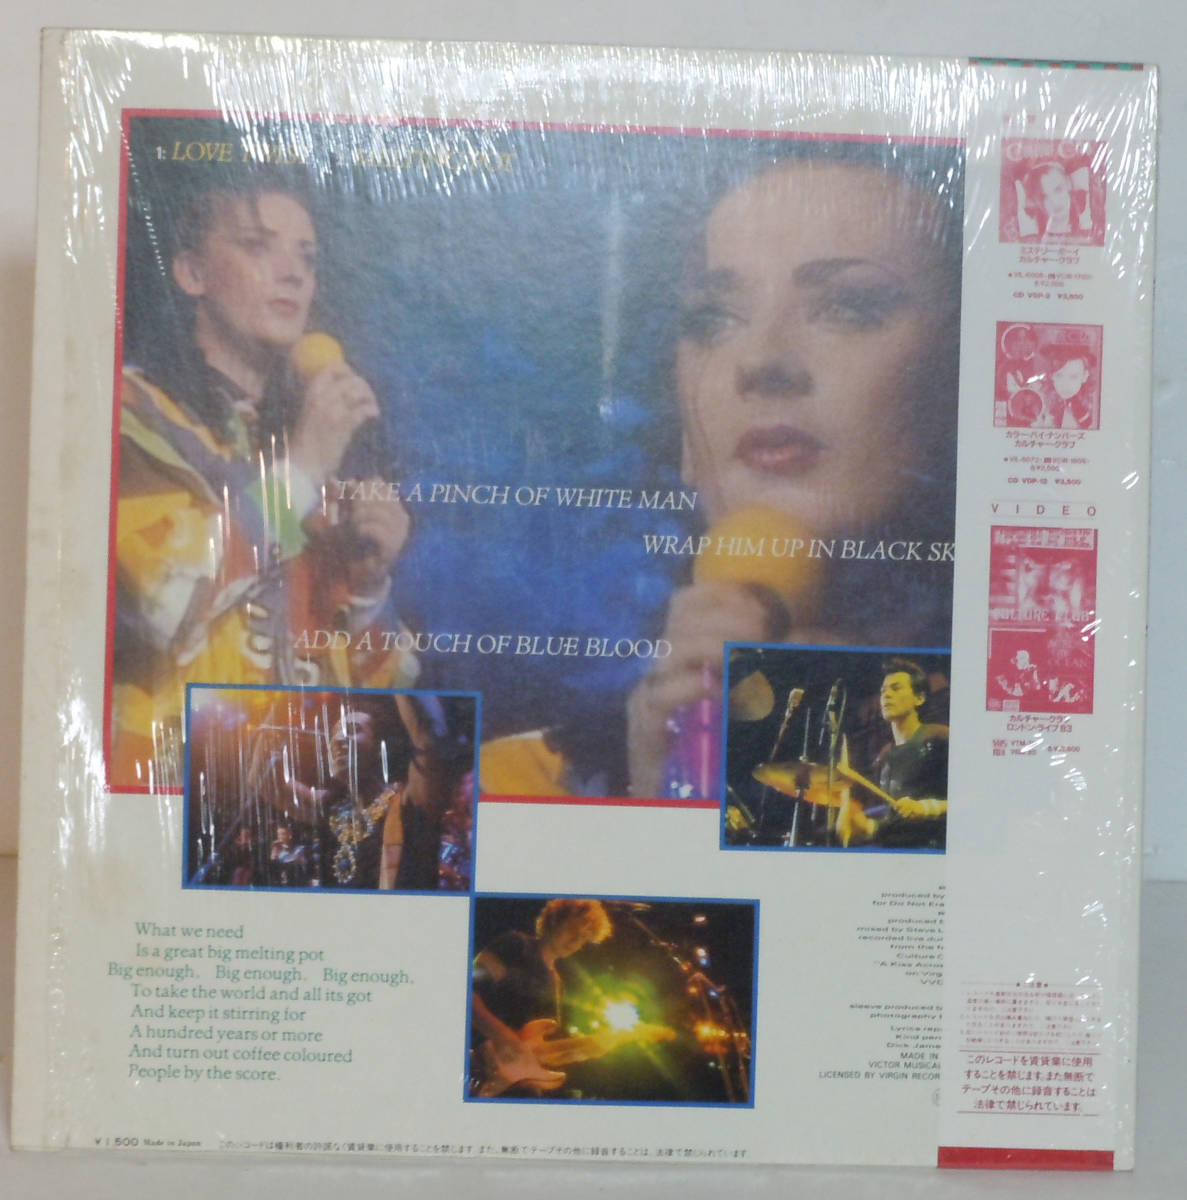 91205S 限定盤 帯付12LP★カルチャー・クラブ/CULTURE CLUB/It's a miracle/Miss me blind/Love twist/Melting pot★VIP-5916 _画像2